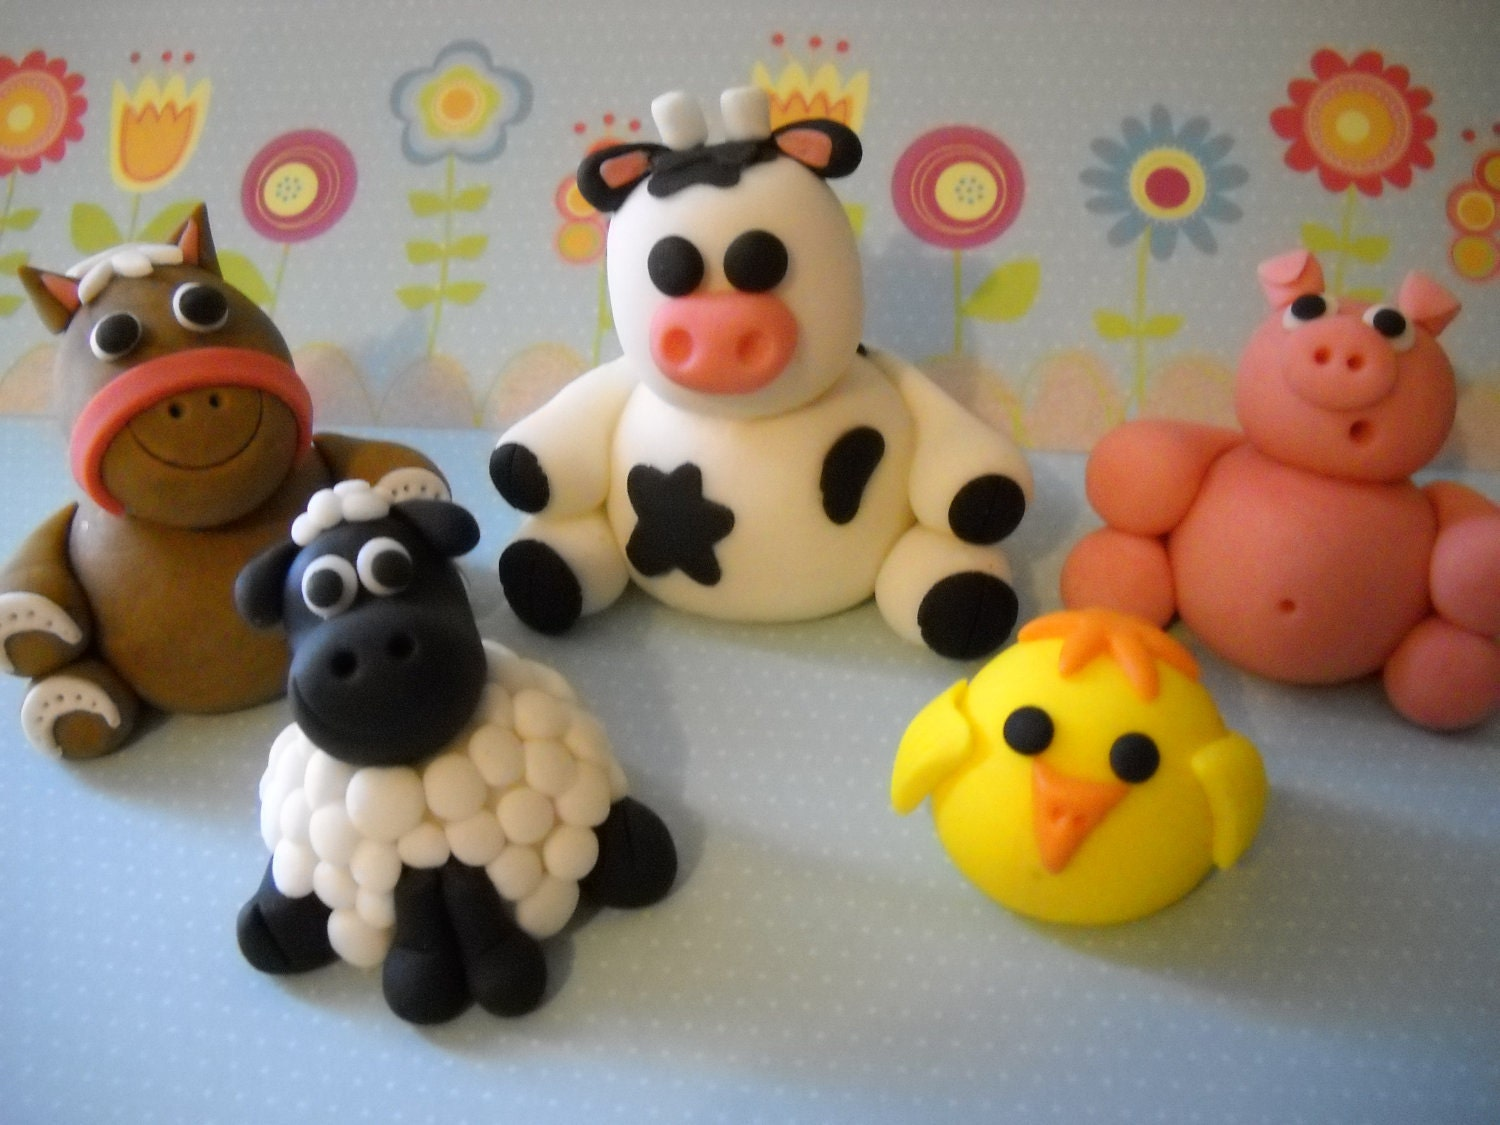 Cake Decorating Sugar Animals : Barn Yard Friends Edible Farm Animals Cake by SugarArtByTami